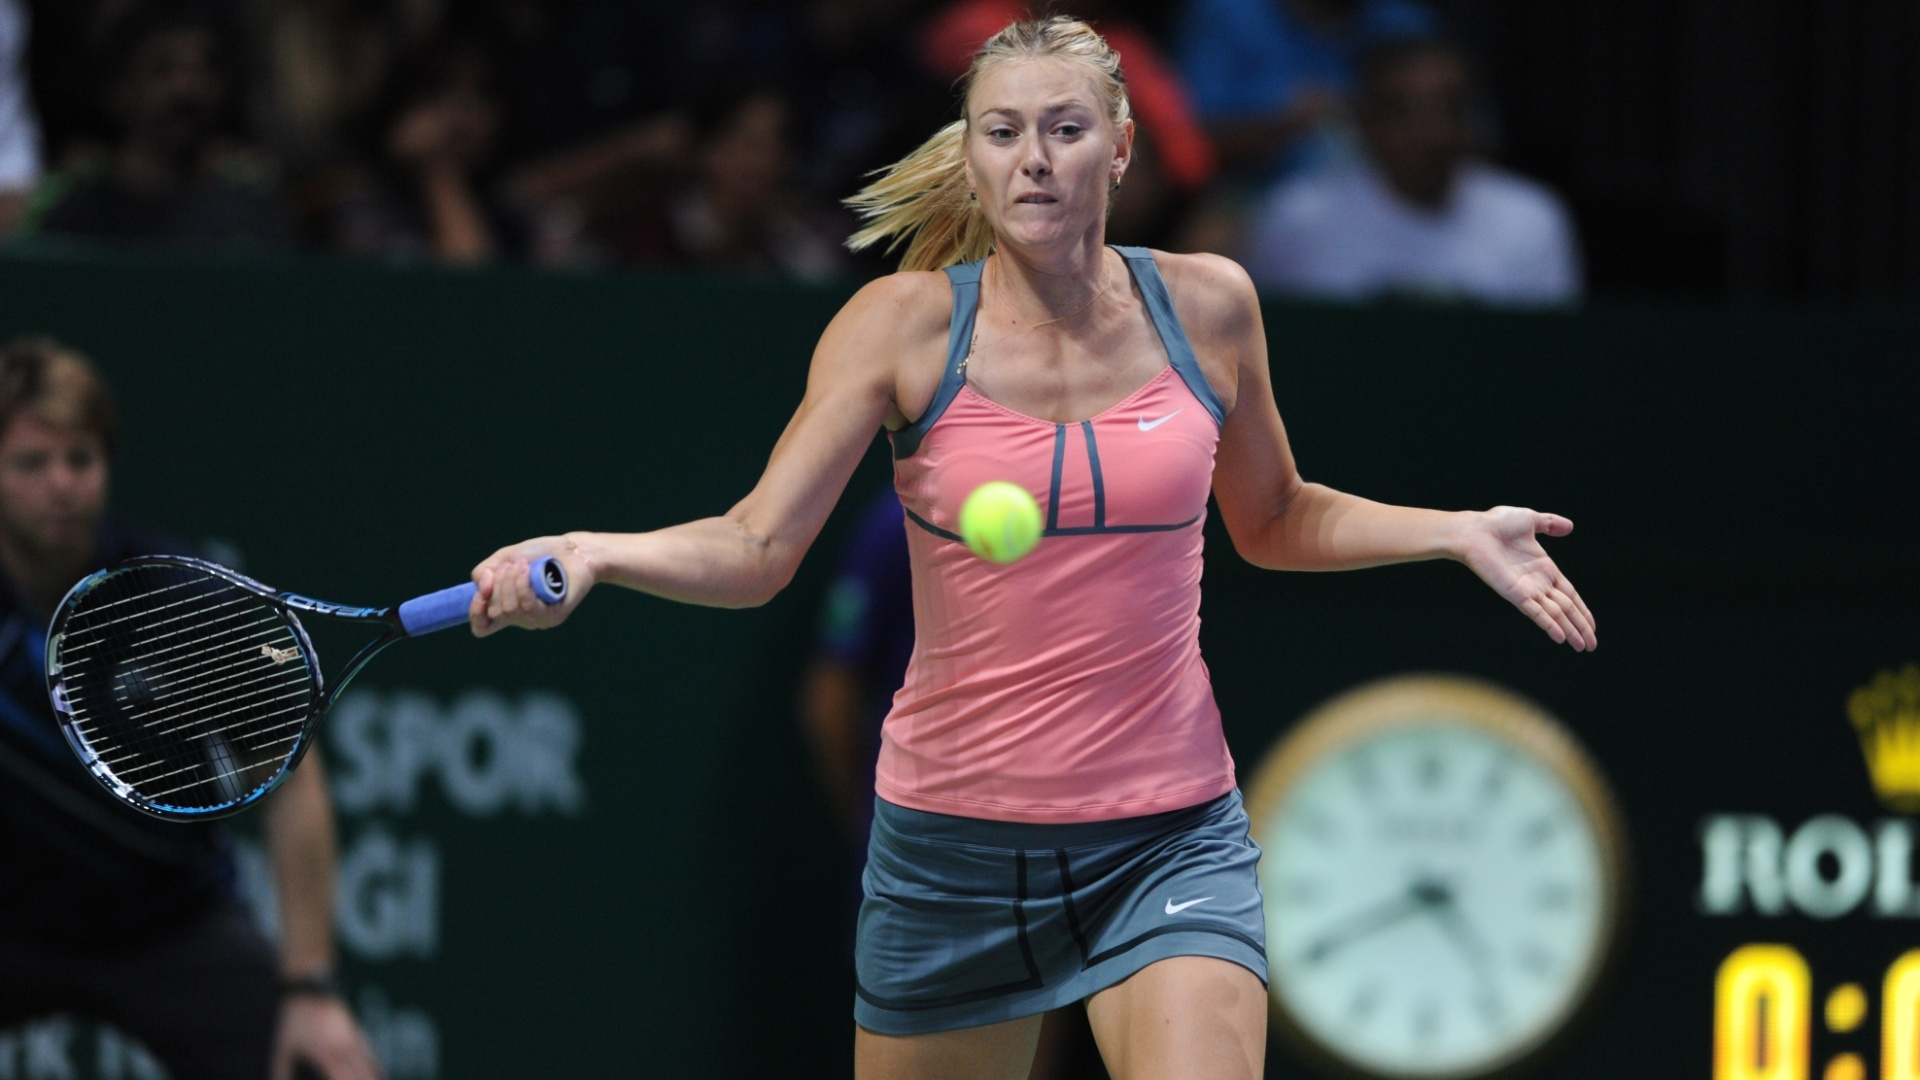 Sharapova prepara forehand na segunda semifinal do Masters de Istambul